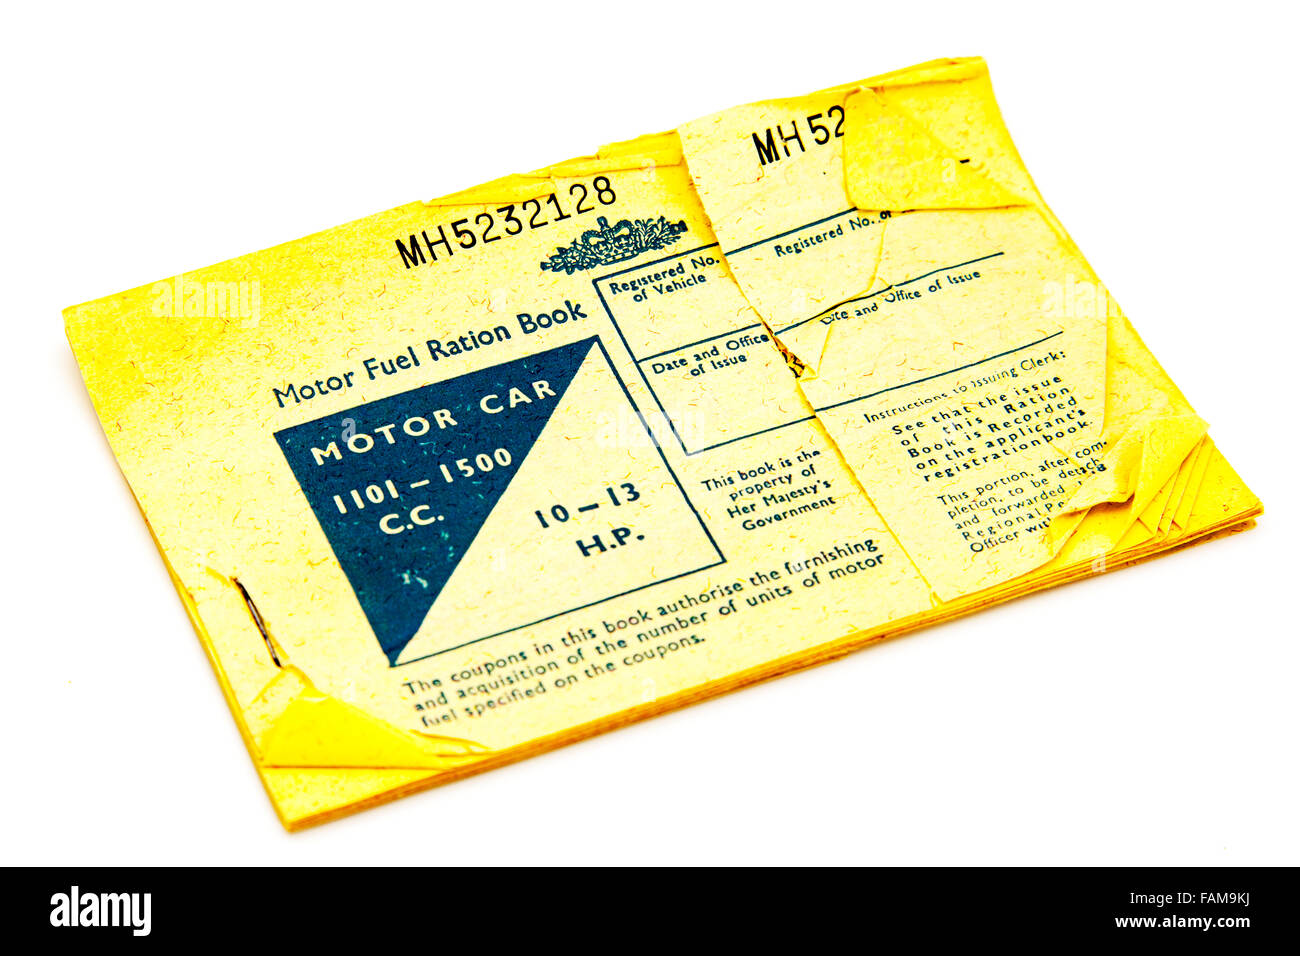 motor fuel ration book rationing shortages petrol British UK GB shortage 1960s 1960's Cutout cut out white background Stock Photo